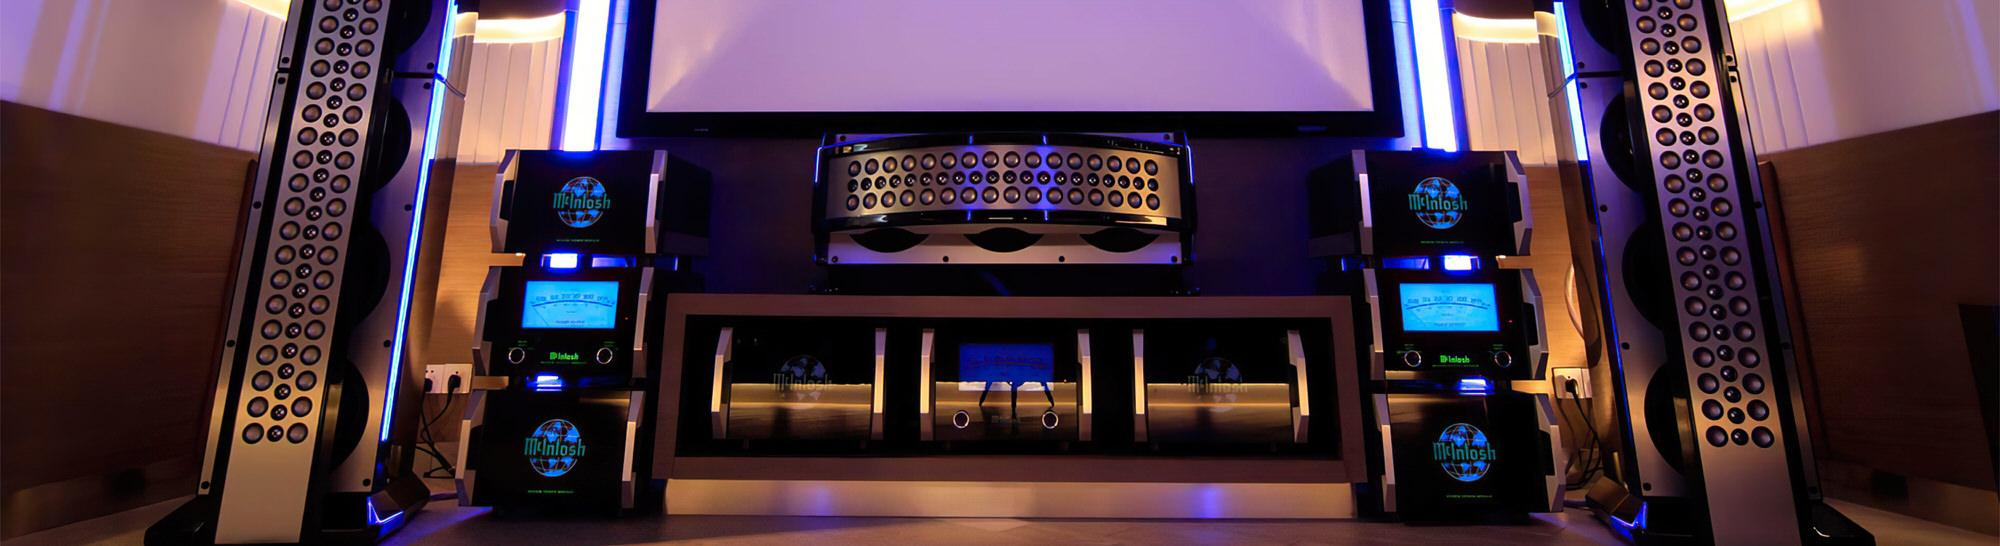 McIntosh Home Cinema